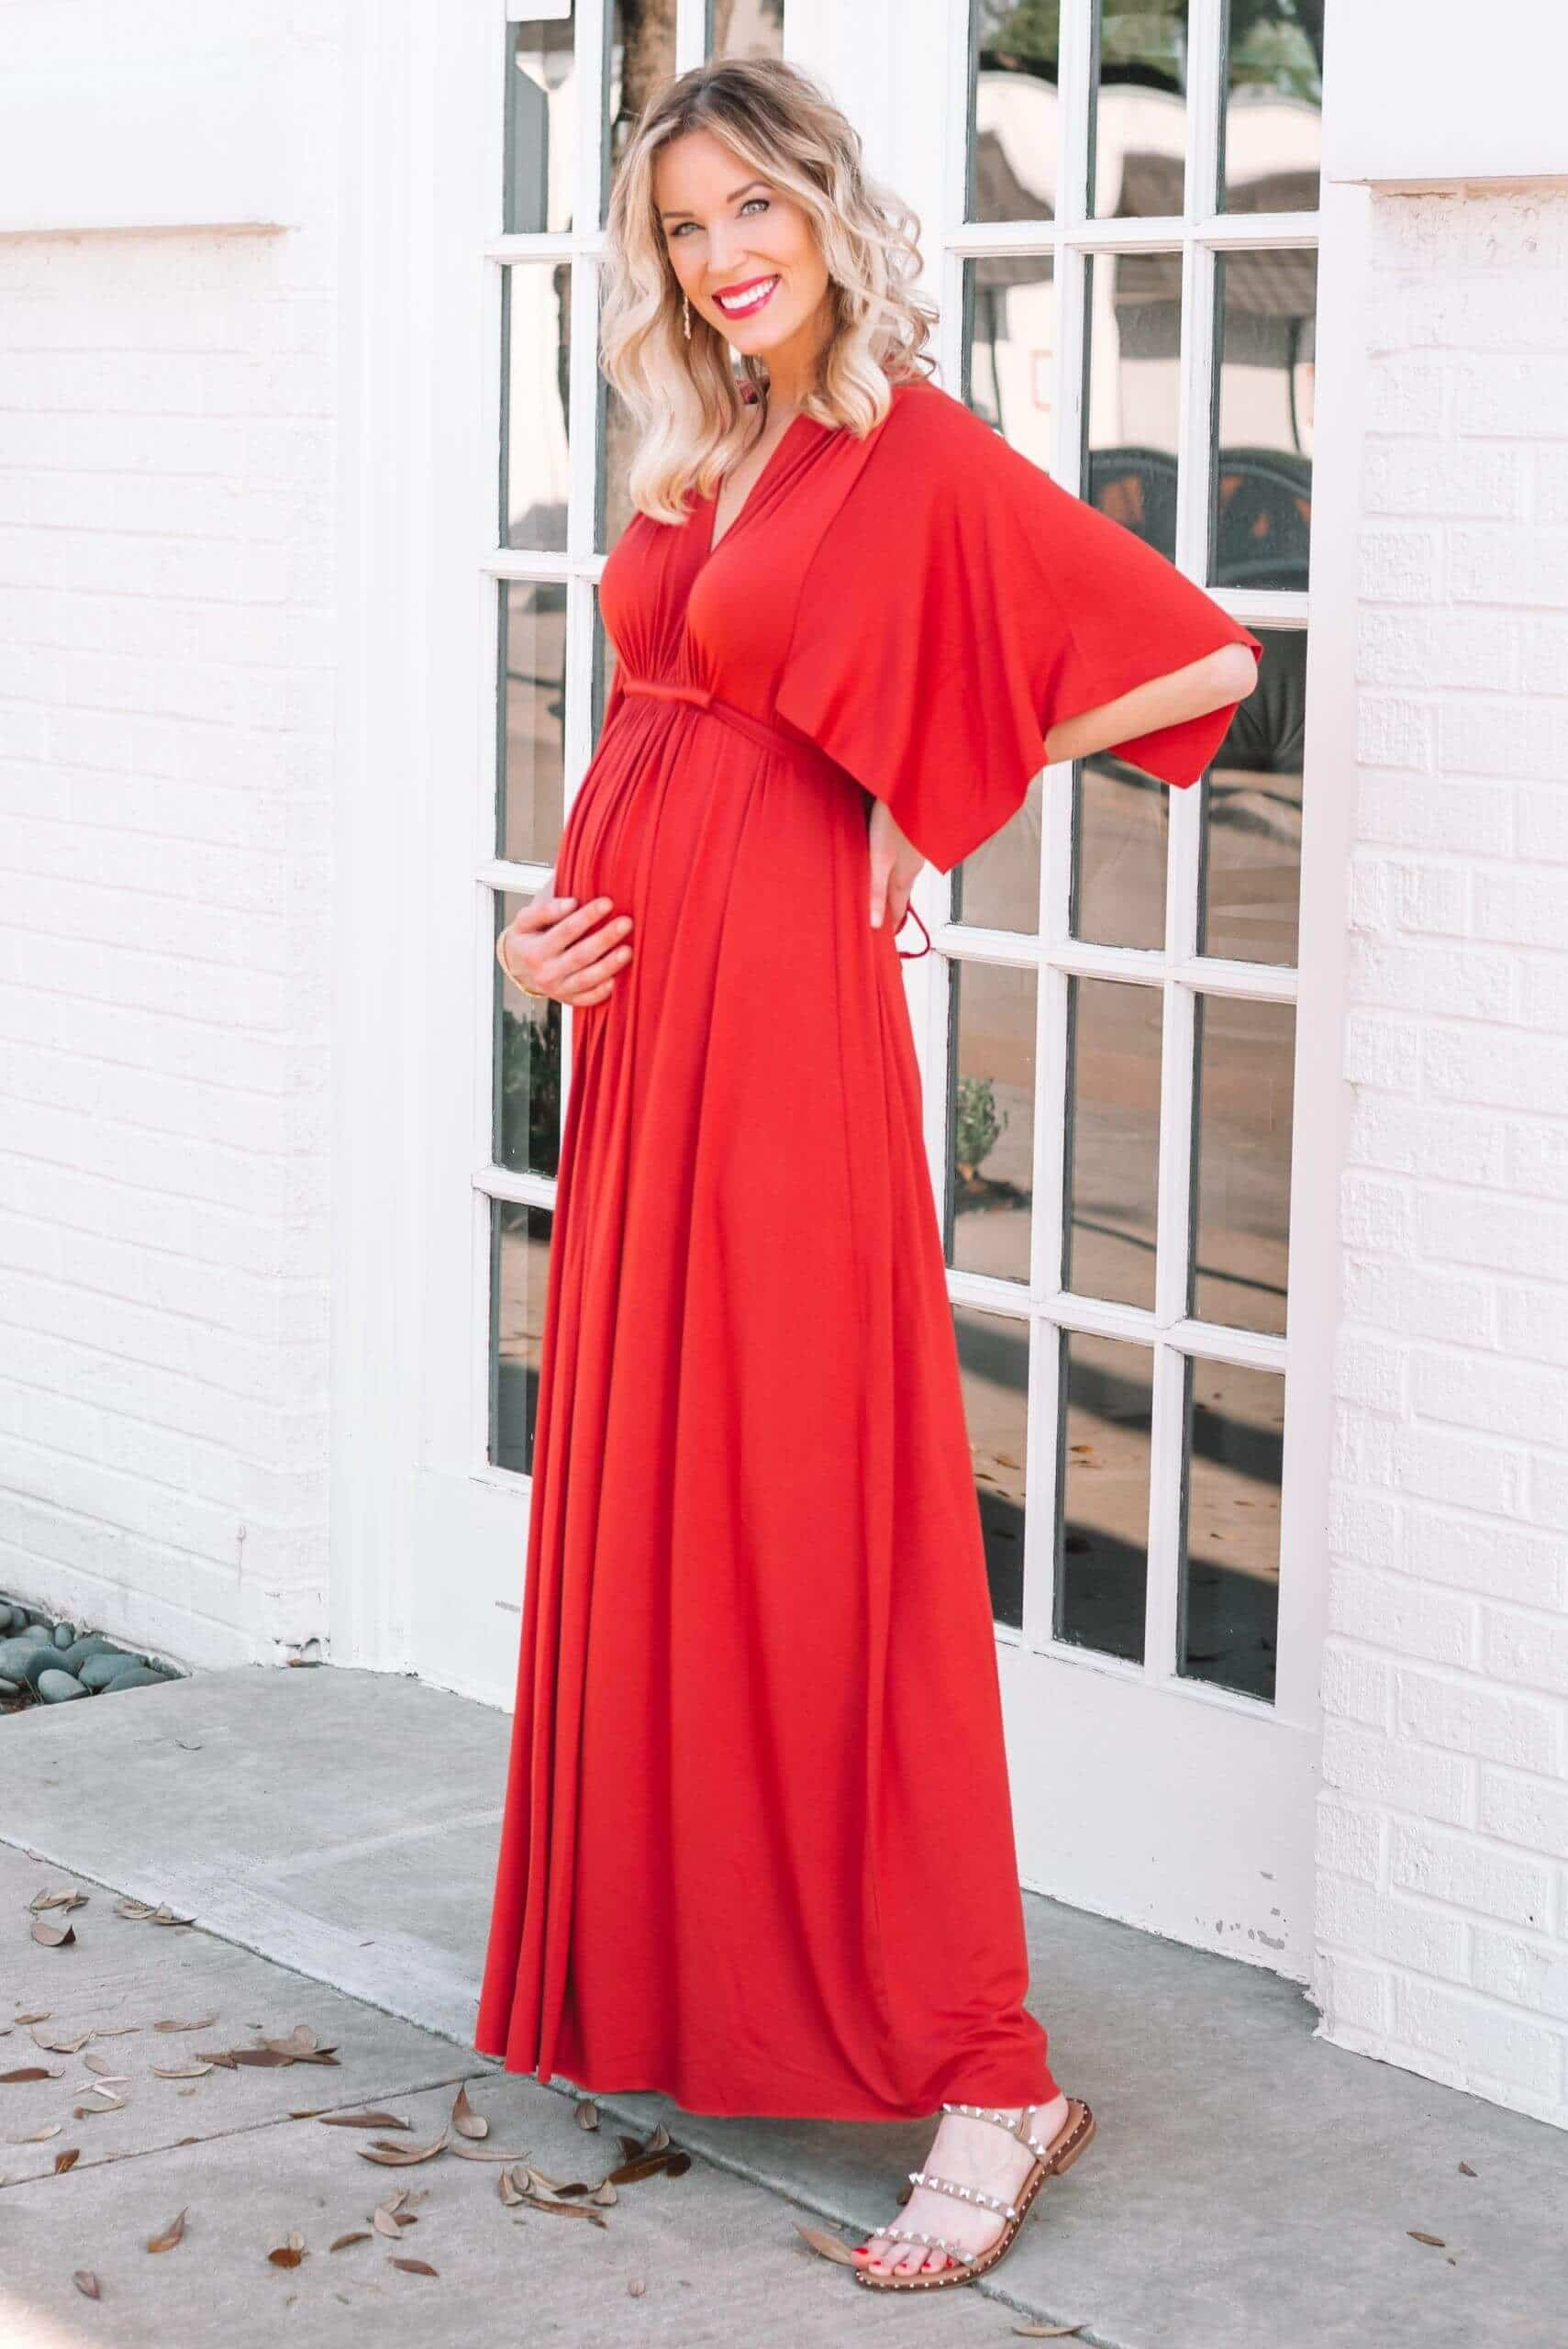 Baby Shower Outfits Ideas for Moms